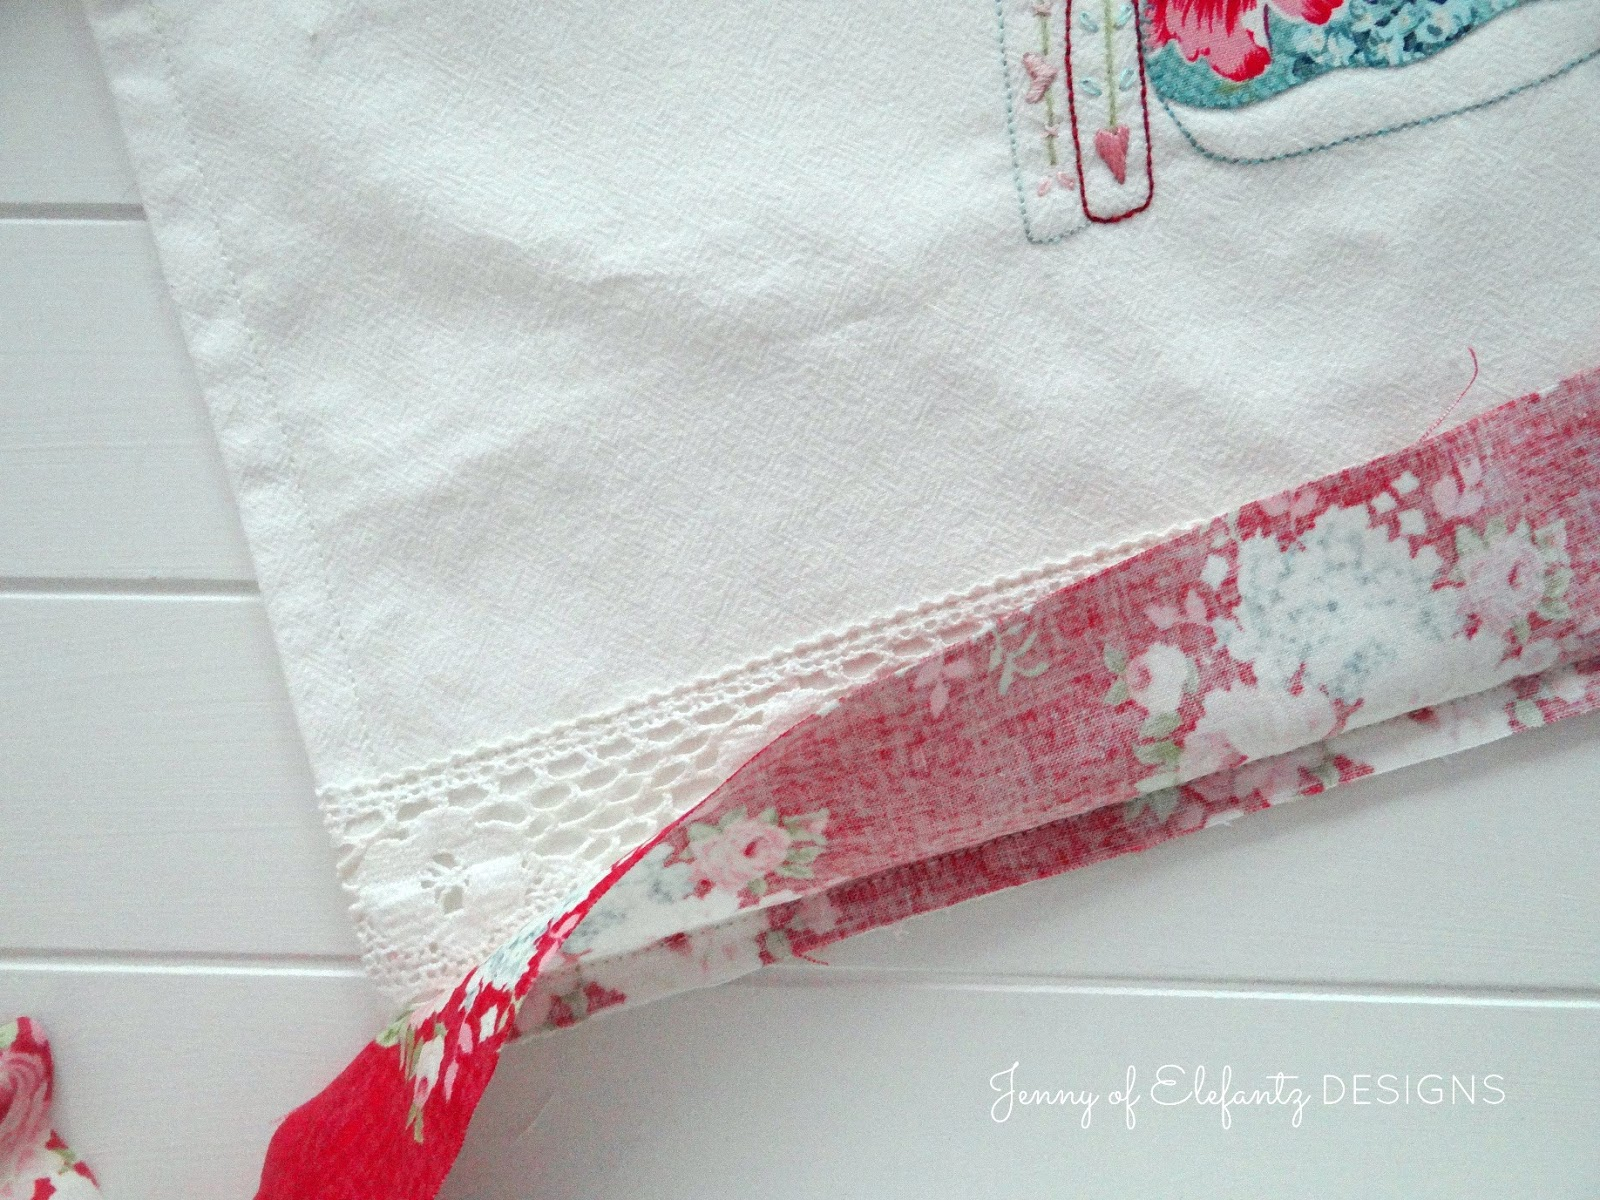 Jenny of ELEFANTZ: The V pincushion and a shabby chic style hand